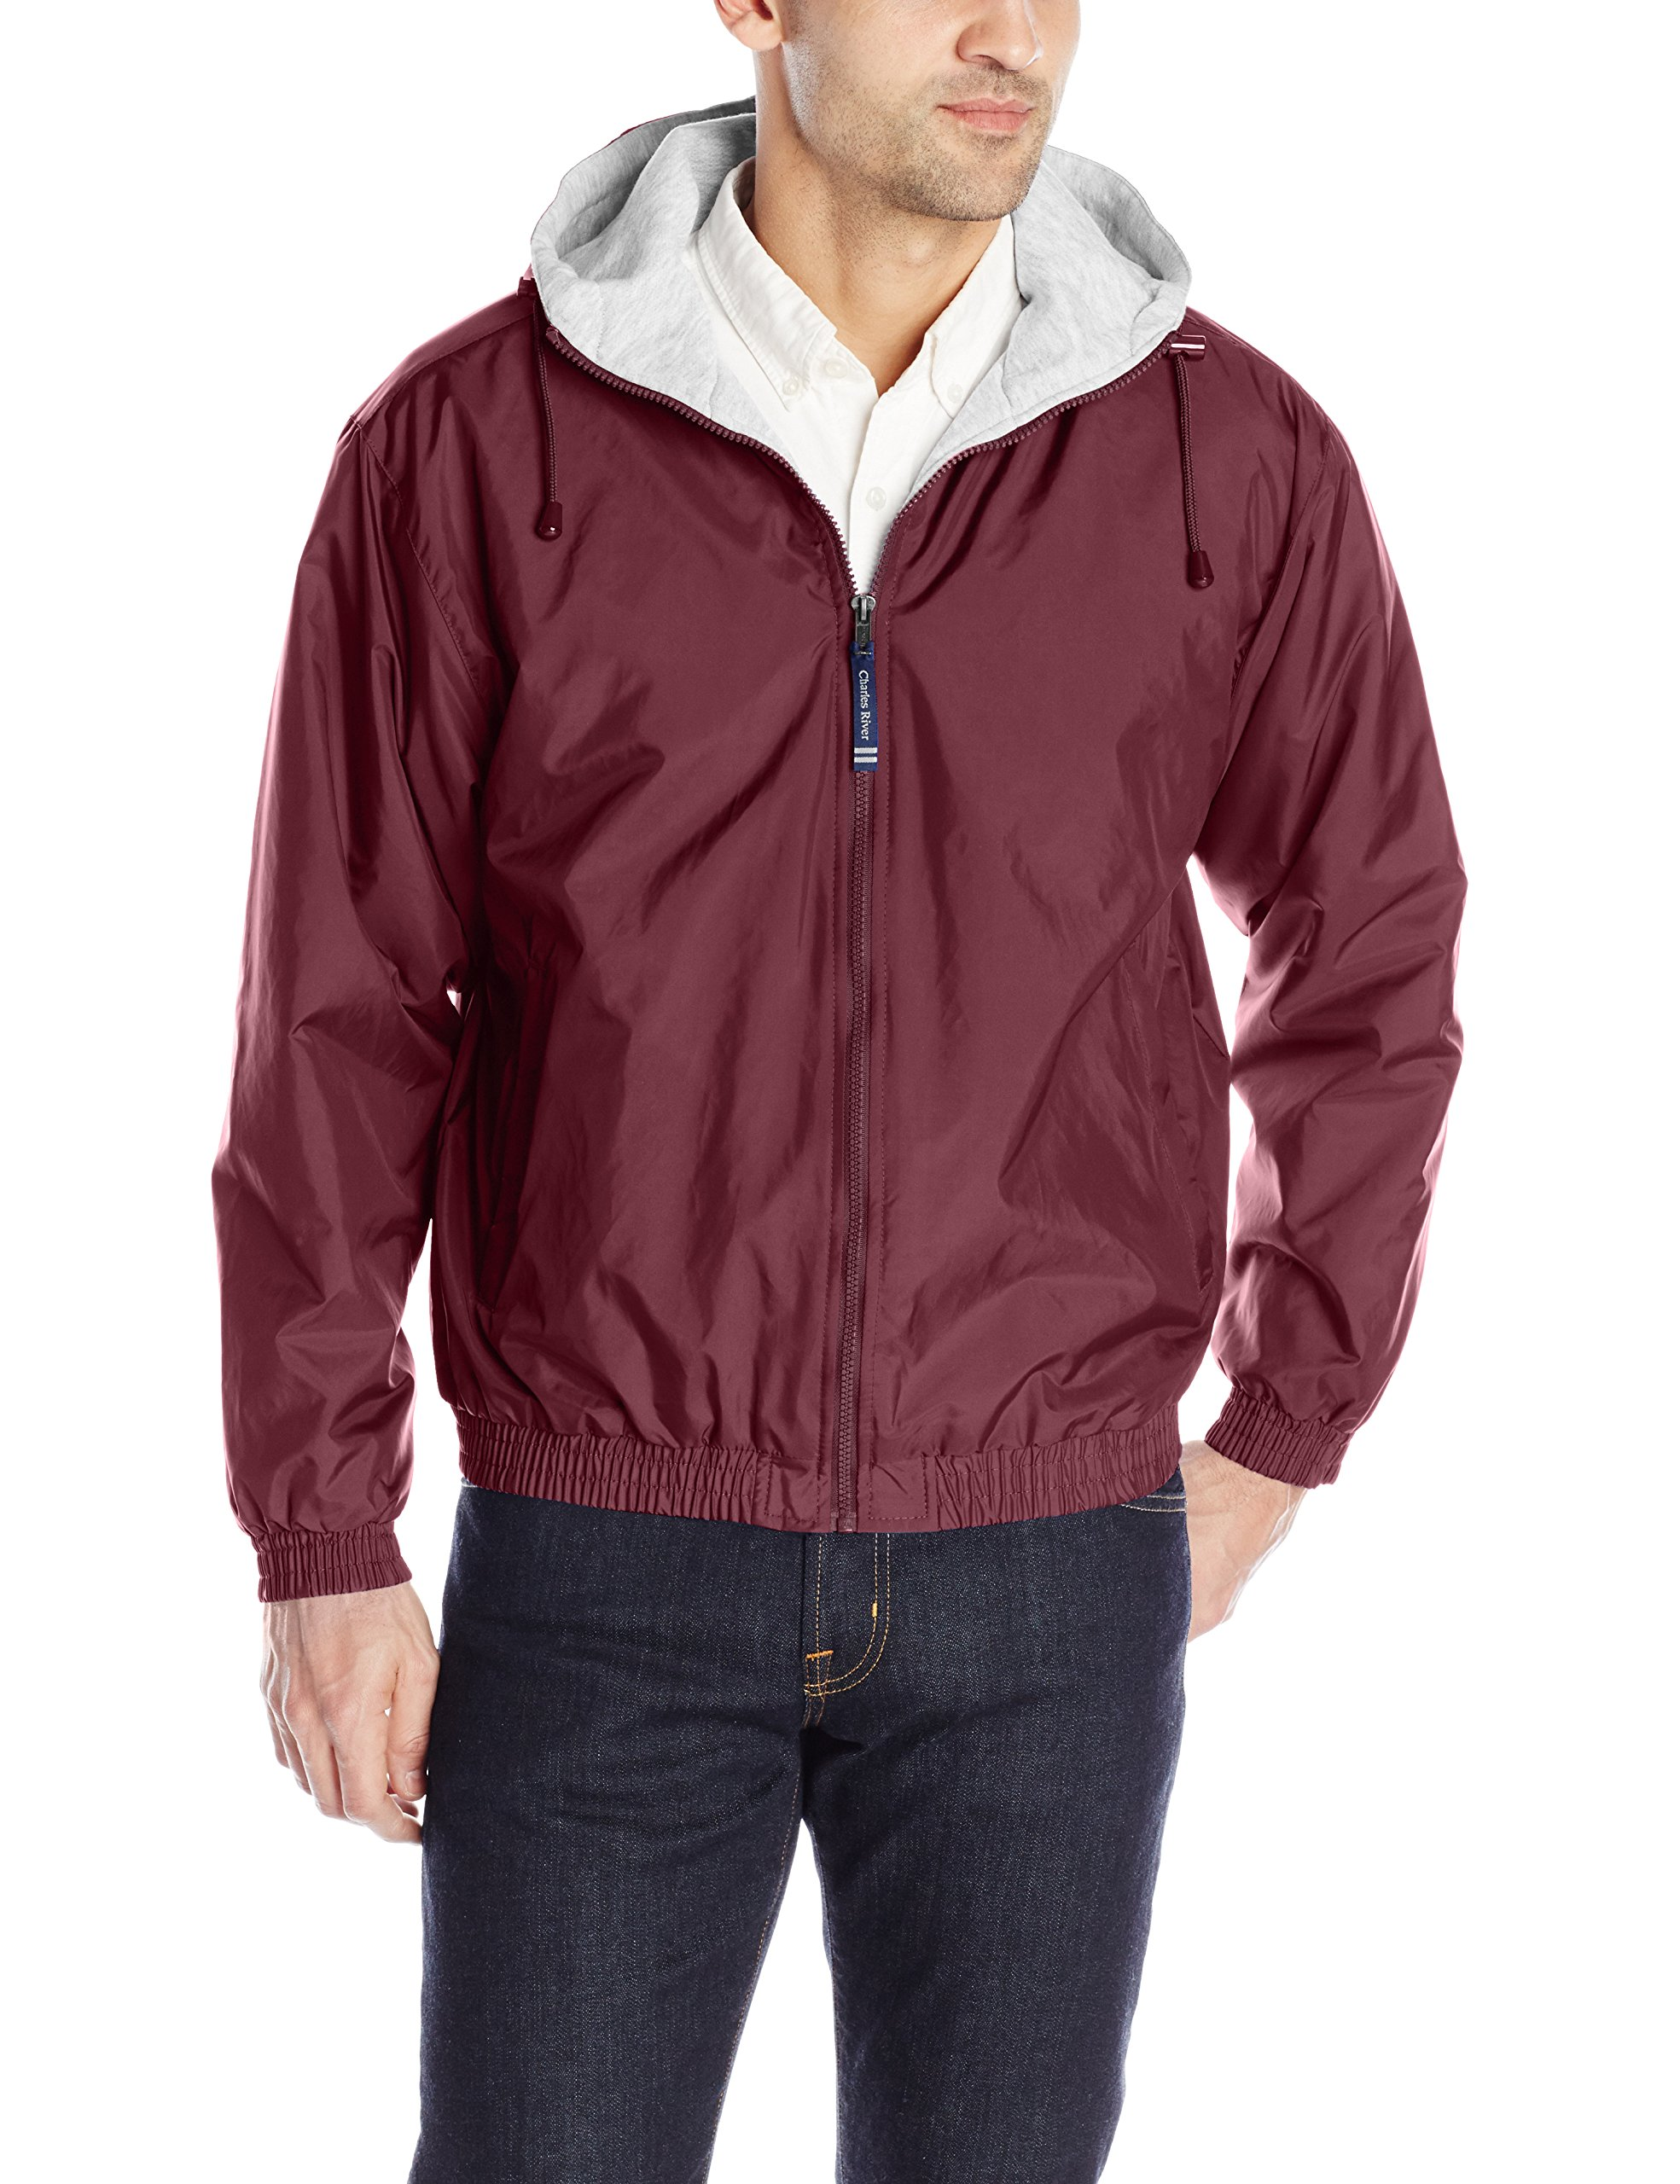 The ''Performer Collection'' Performer Nylon Jacket from Charles River Apparel,030 Maroon,Adult Large by Charles River Apparel